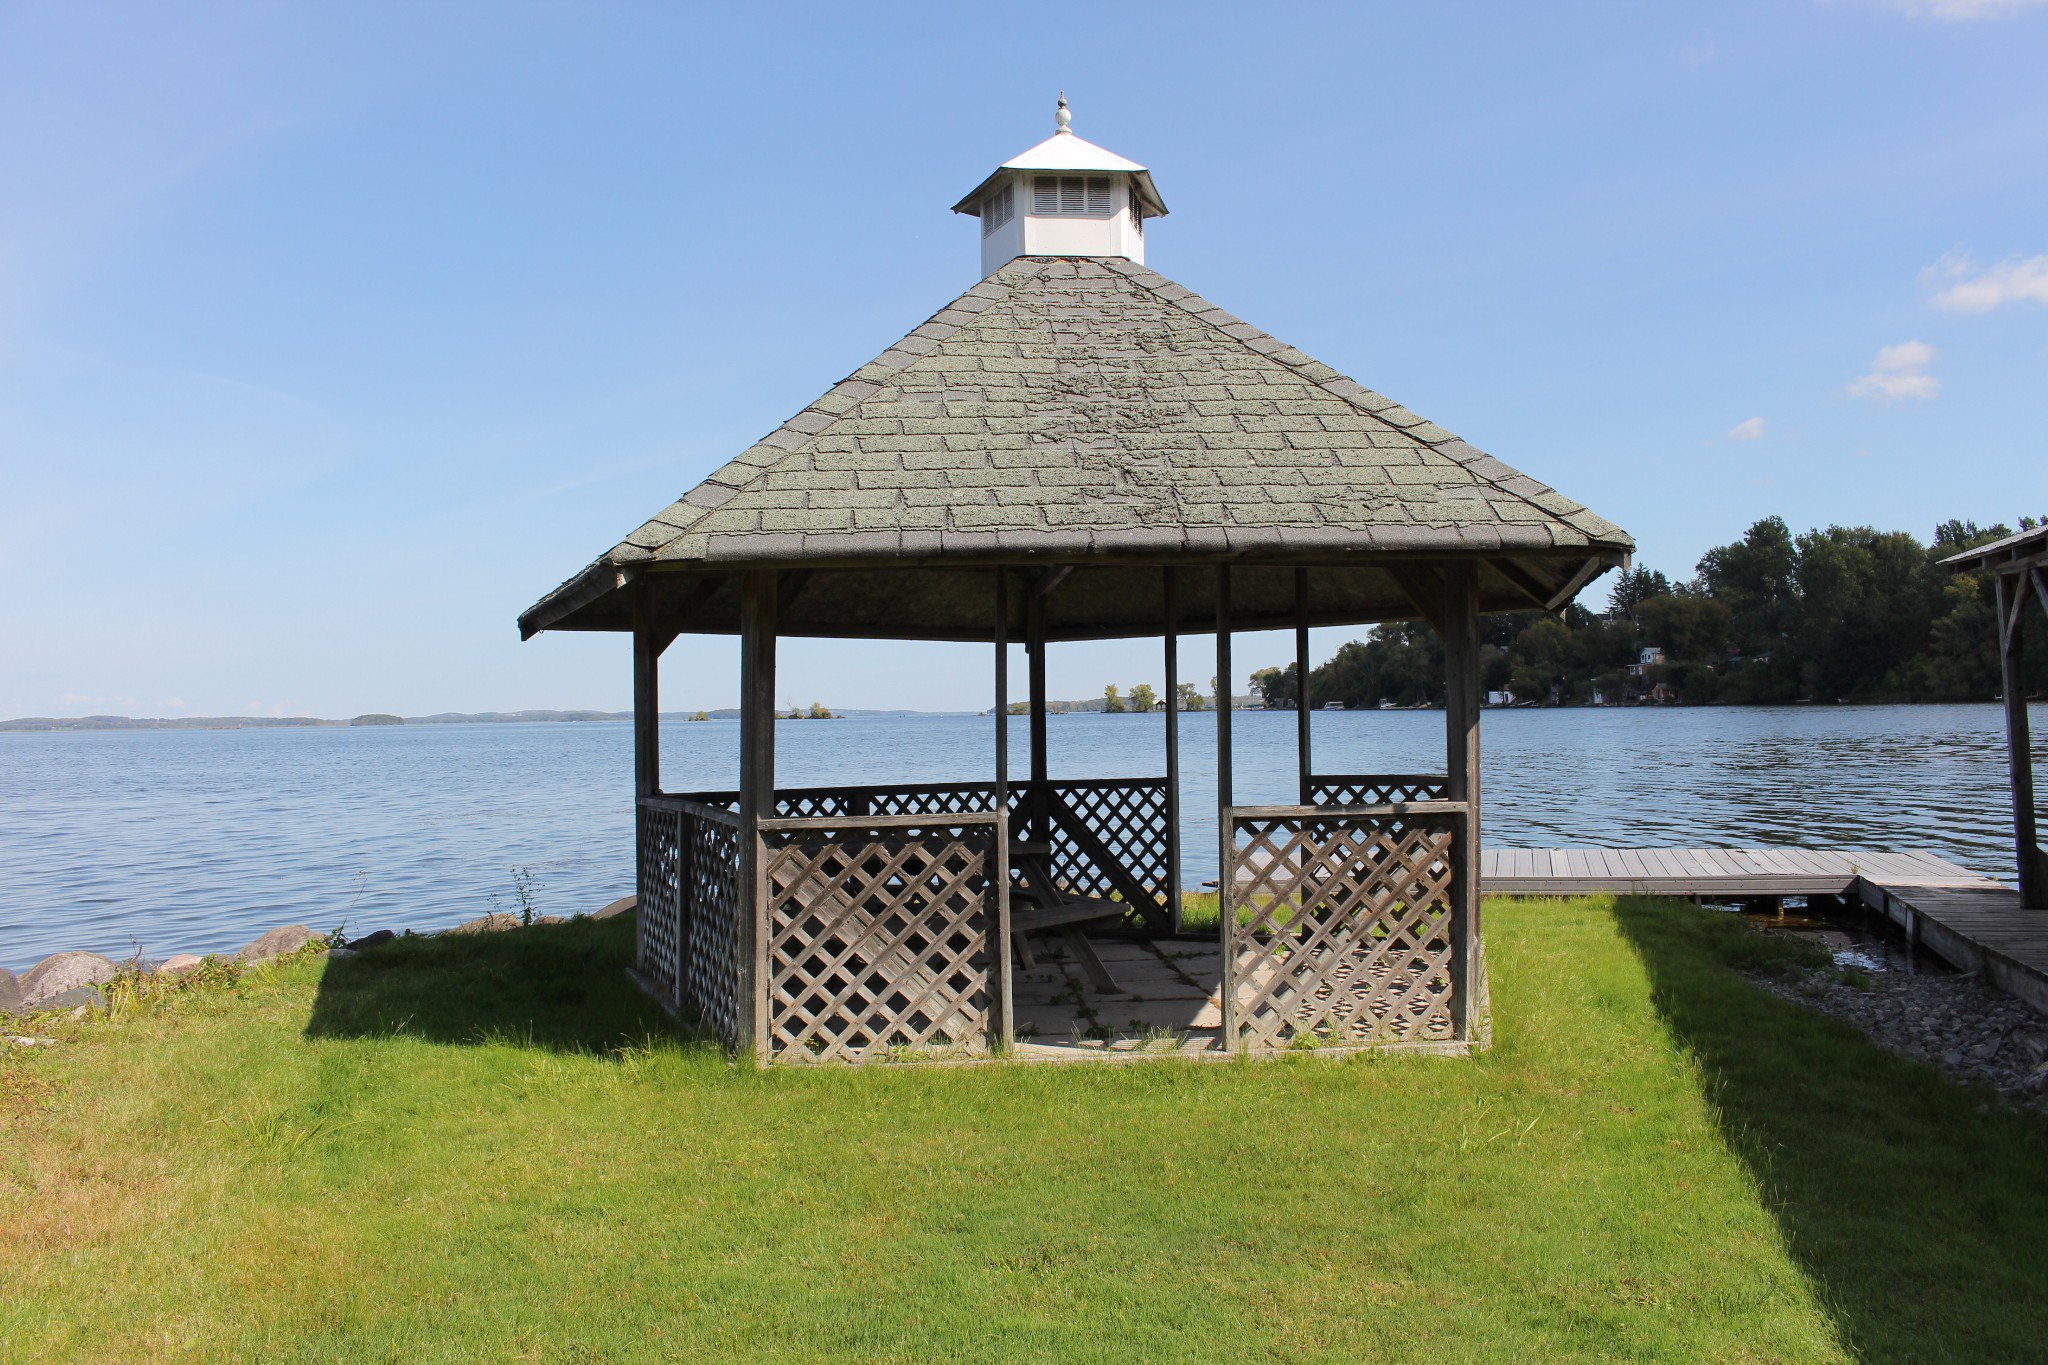 Photo 15: Photos: 6010 Rice Lake Scenic Drive in Harwood: Other for sale : MLS®# 223405